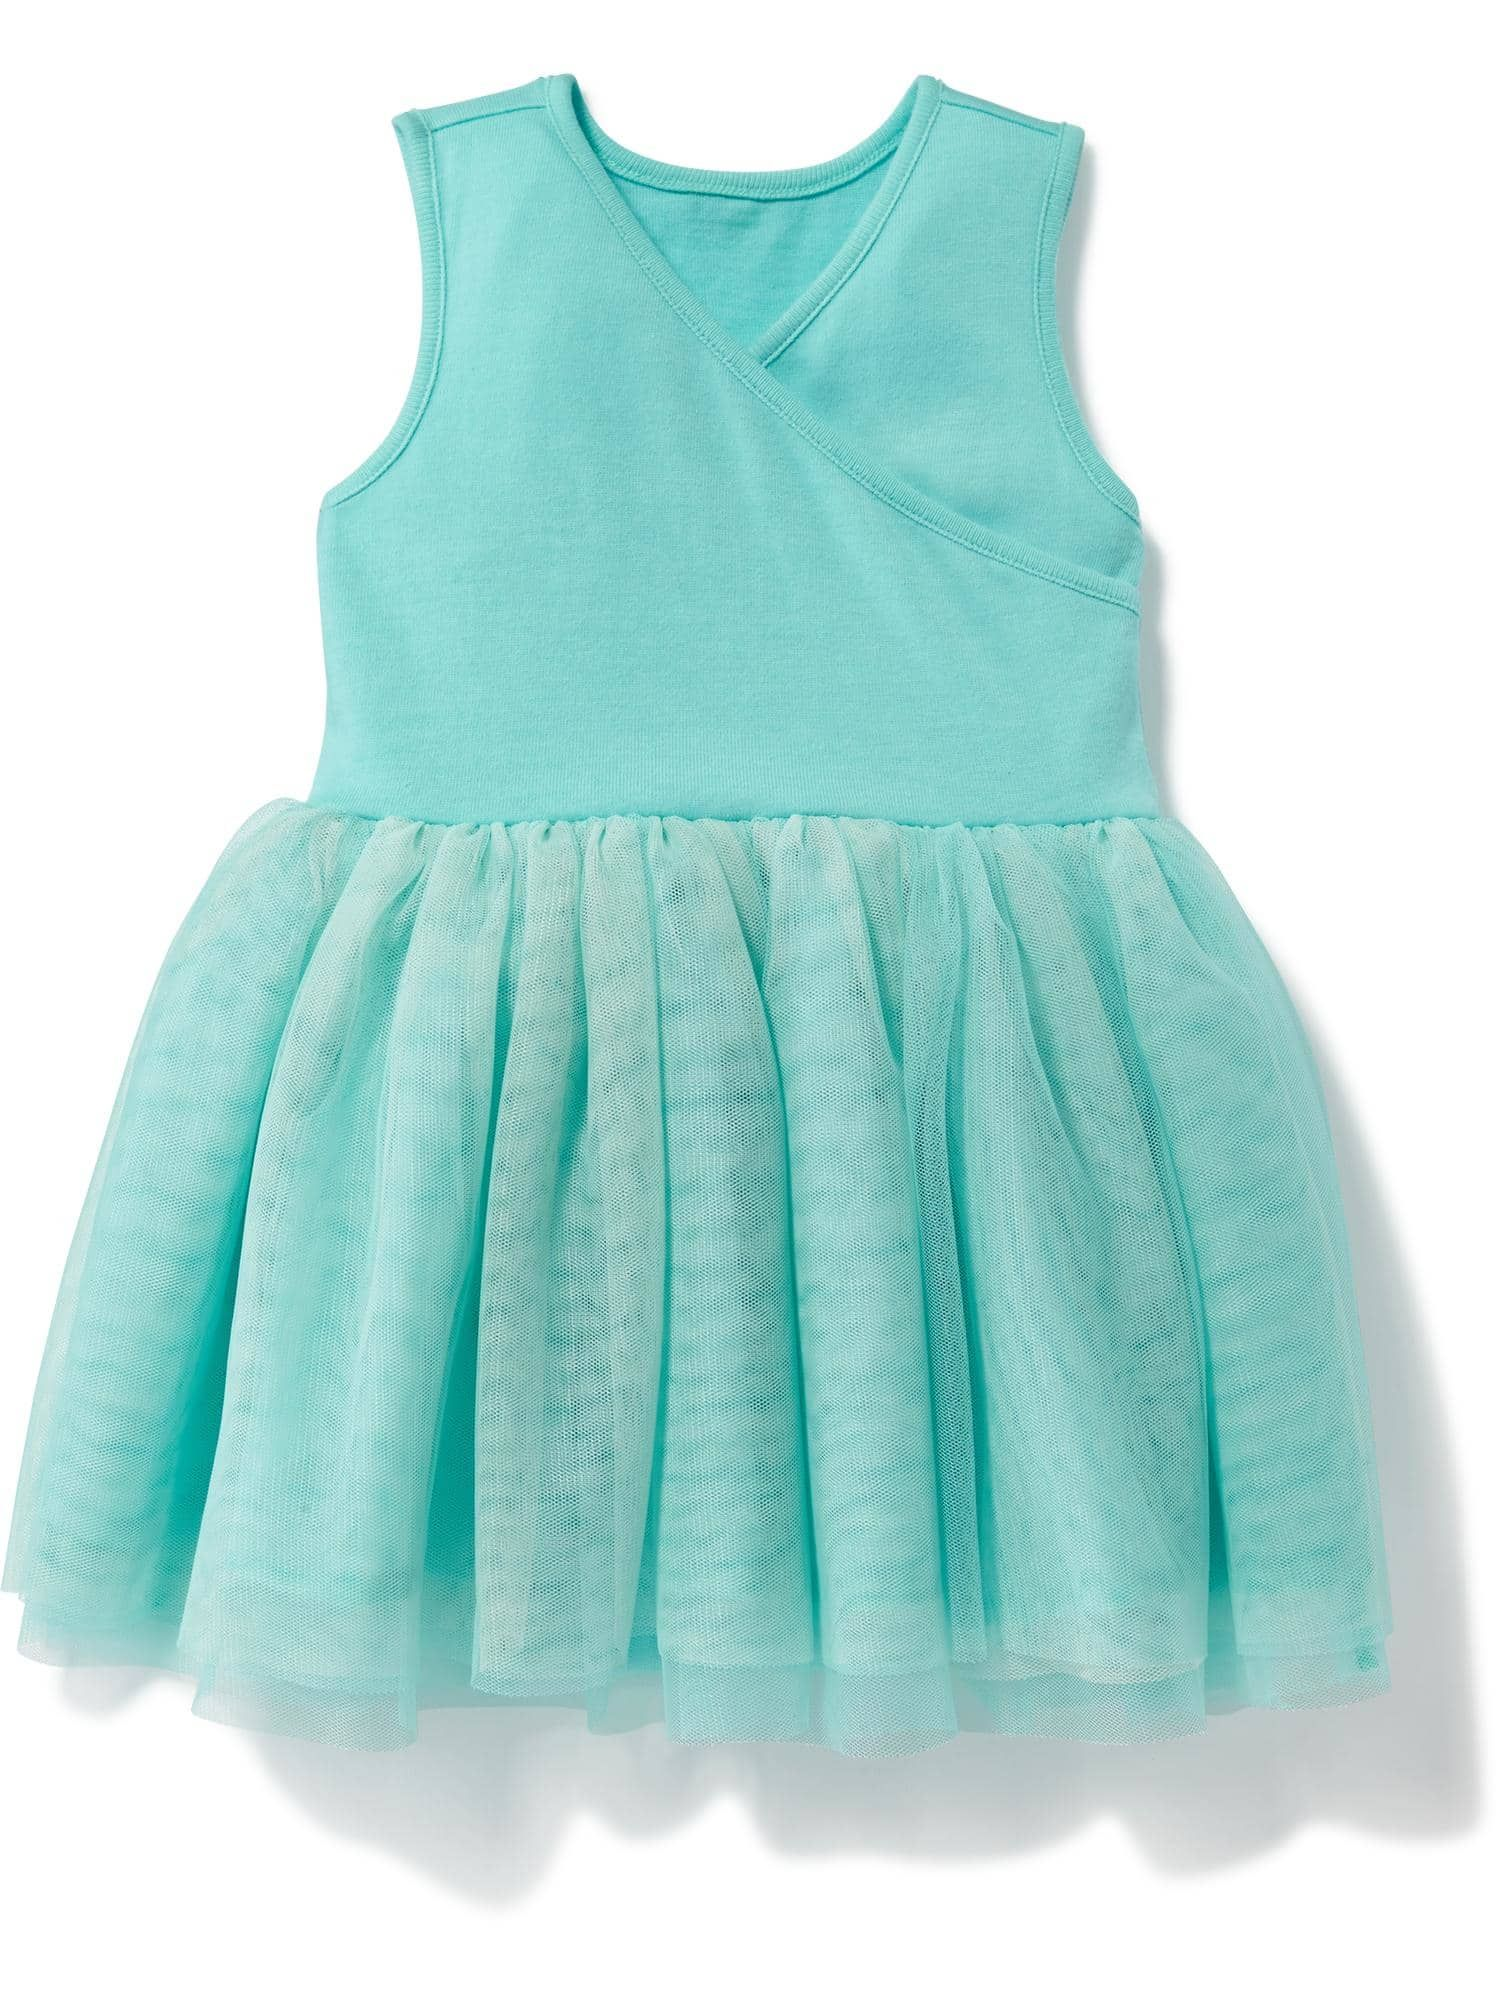 Cross Front Tutu Dress for Baby Old Navy willow clothes